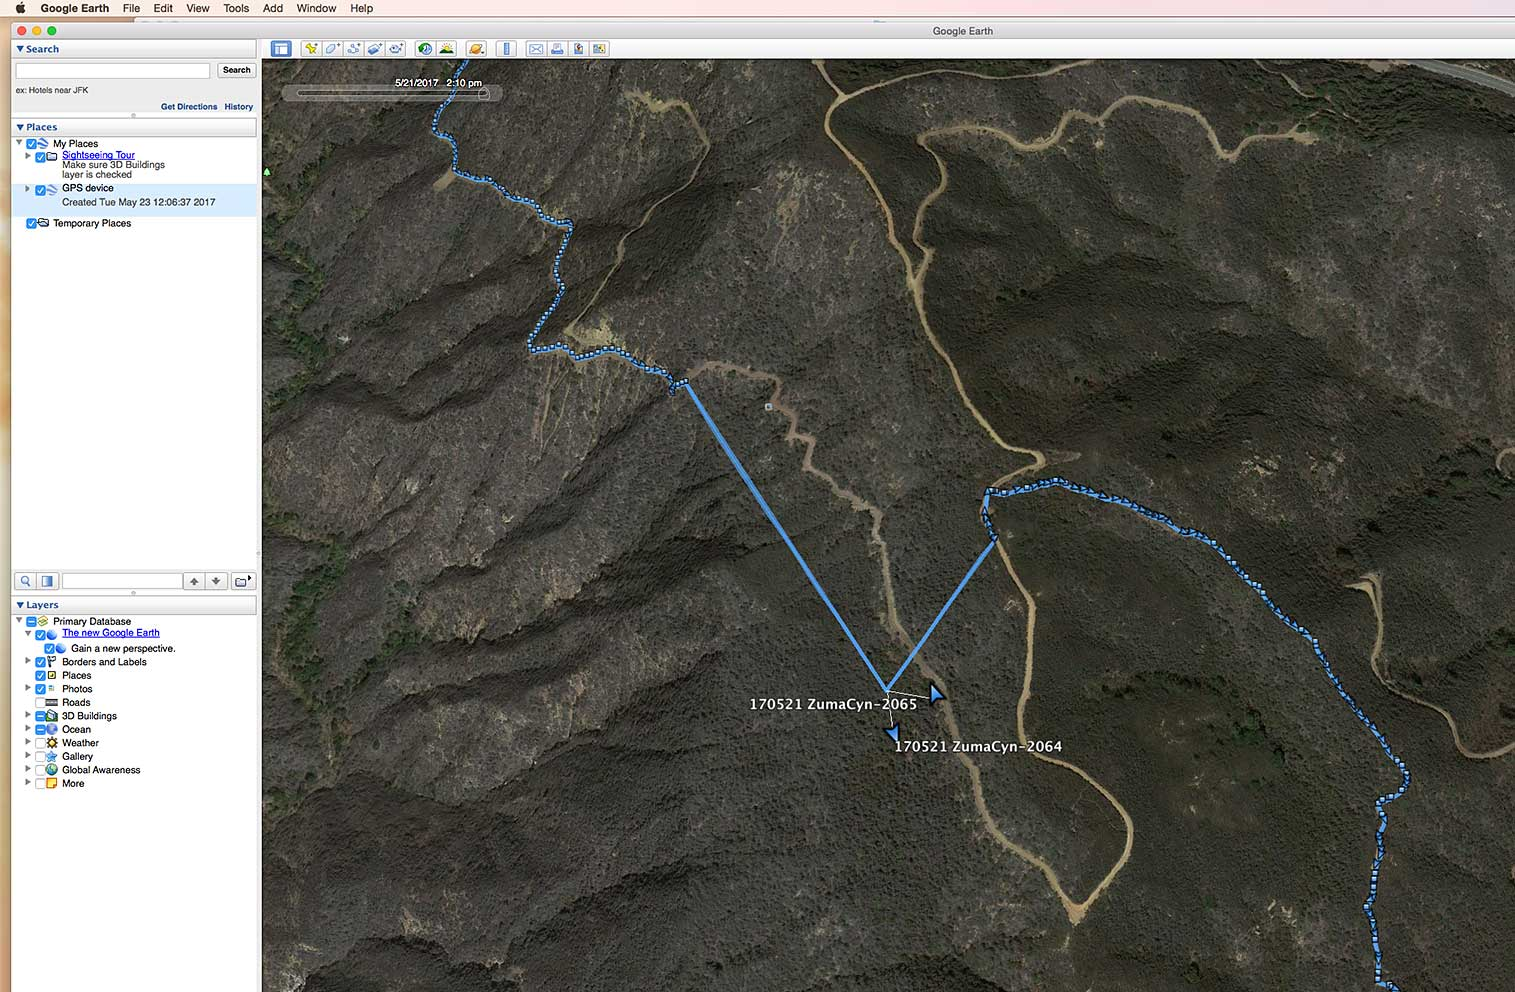 How to edit a GPS track in Google Earth (Mac)? - Google Maps ... Google Map For Mac on downloader for mac, hot keys for mac, emacs for mac, dragon naturally speaking for mac, cool applications for mac, java for mac, new os for mac, ios for mac, roms for mac, whatsapp for mac, ip address for mac, intel for mac, text to speech for mac, mail for mac, sap for mac, msn for mac, freeware software for mac, avg antivirus for mac, power point for mac, task manager for mac,